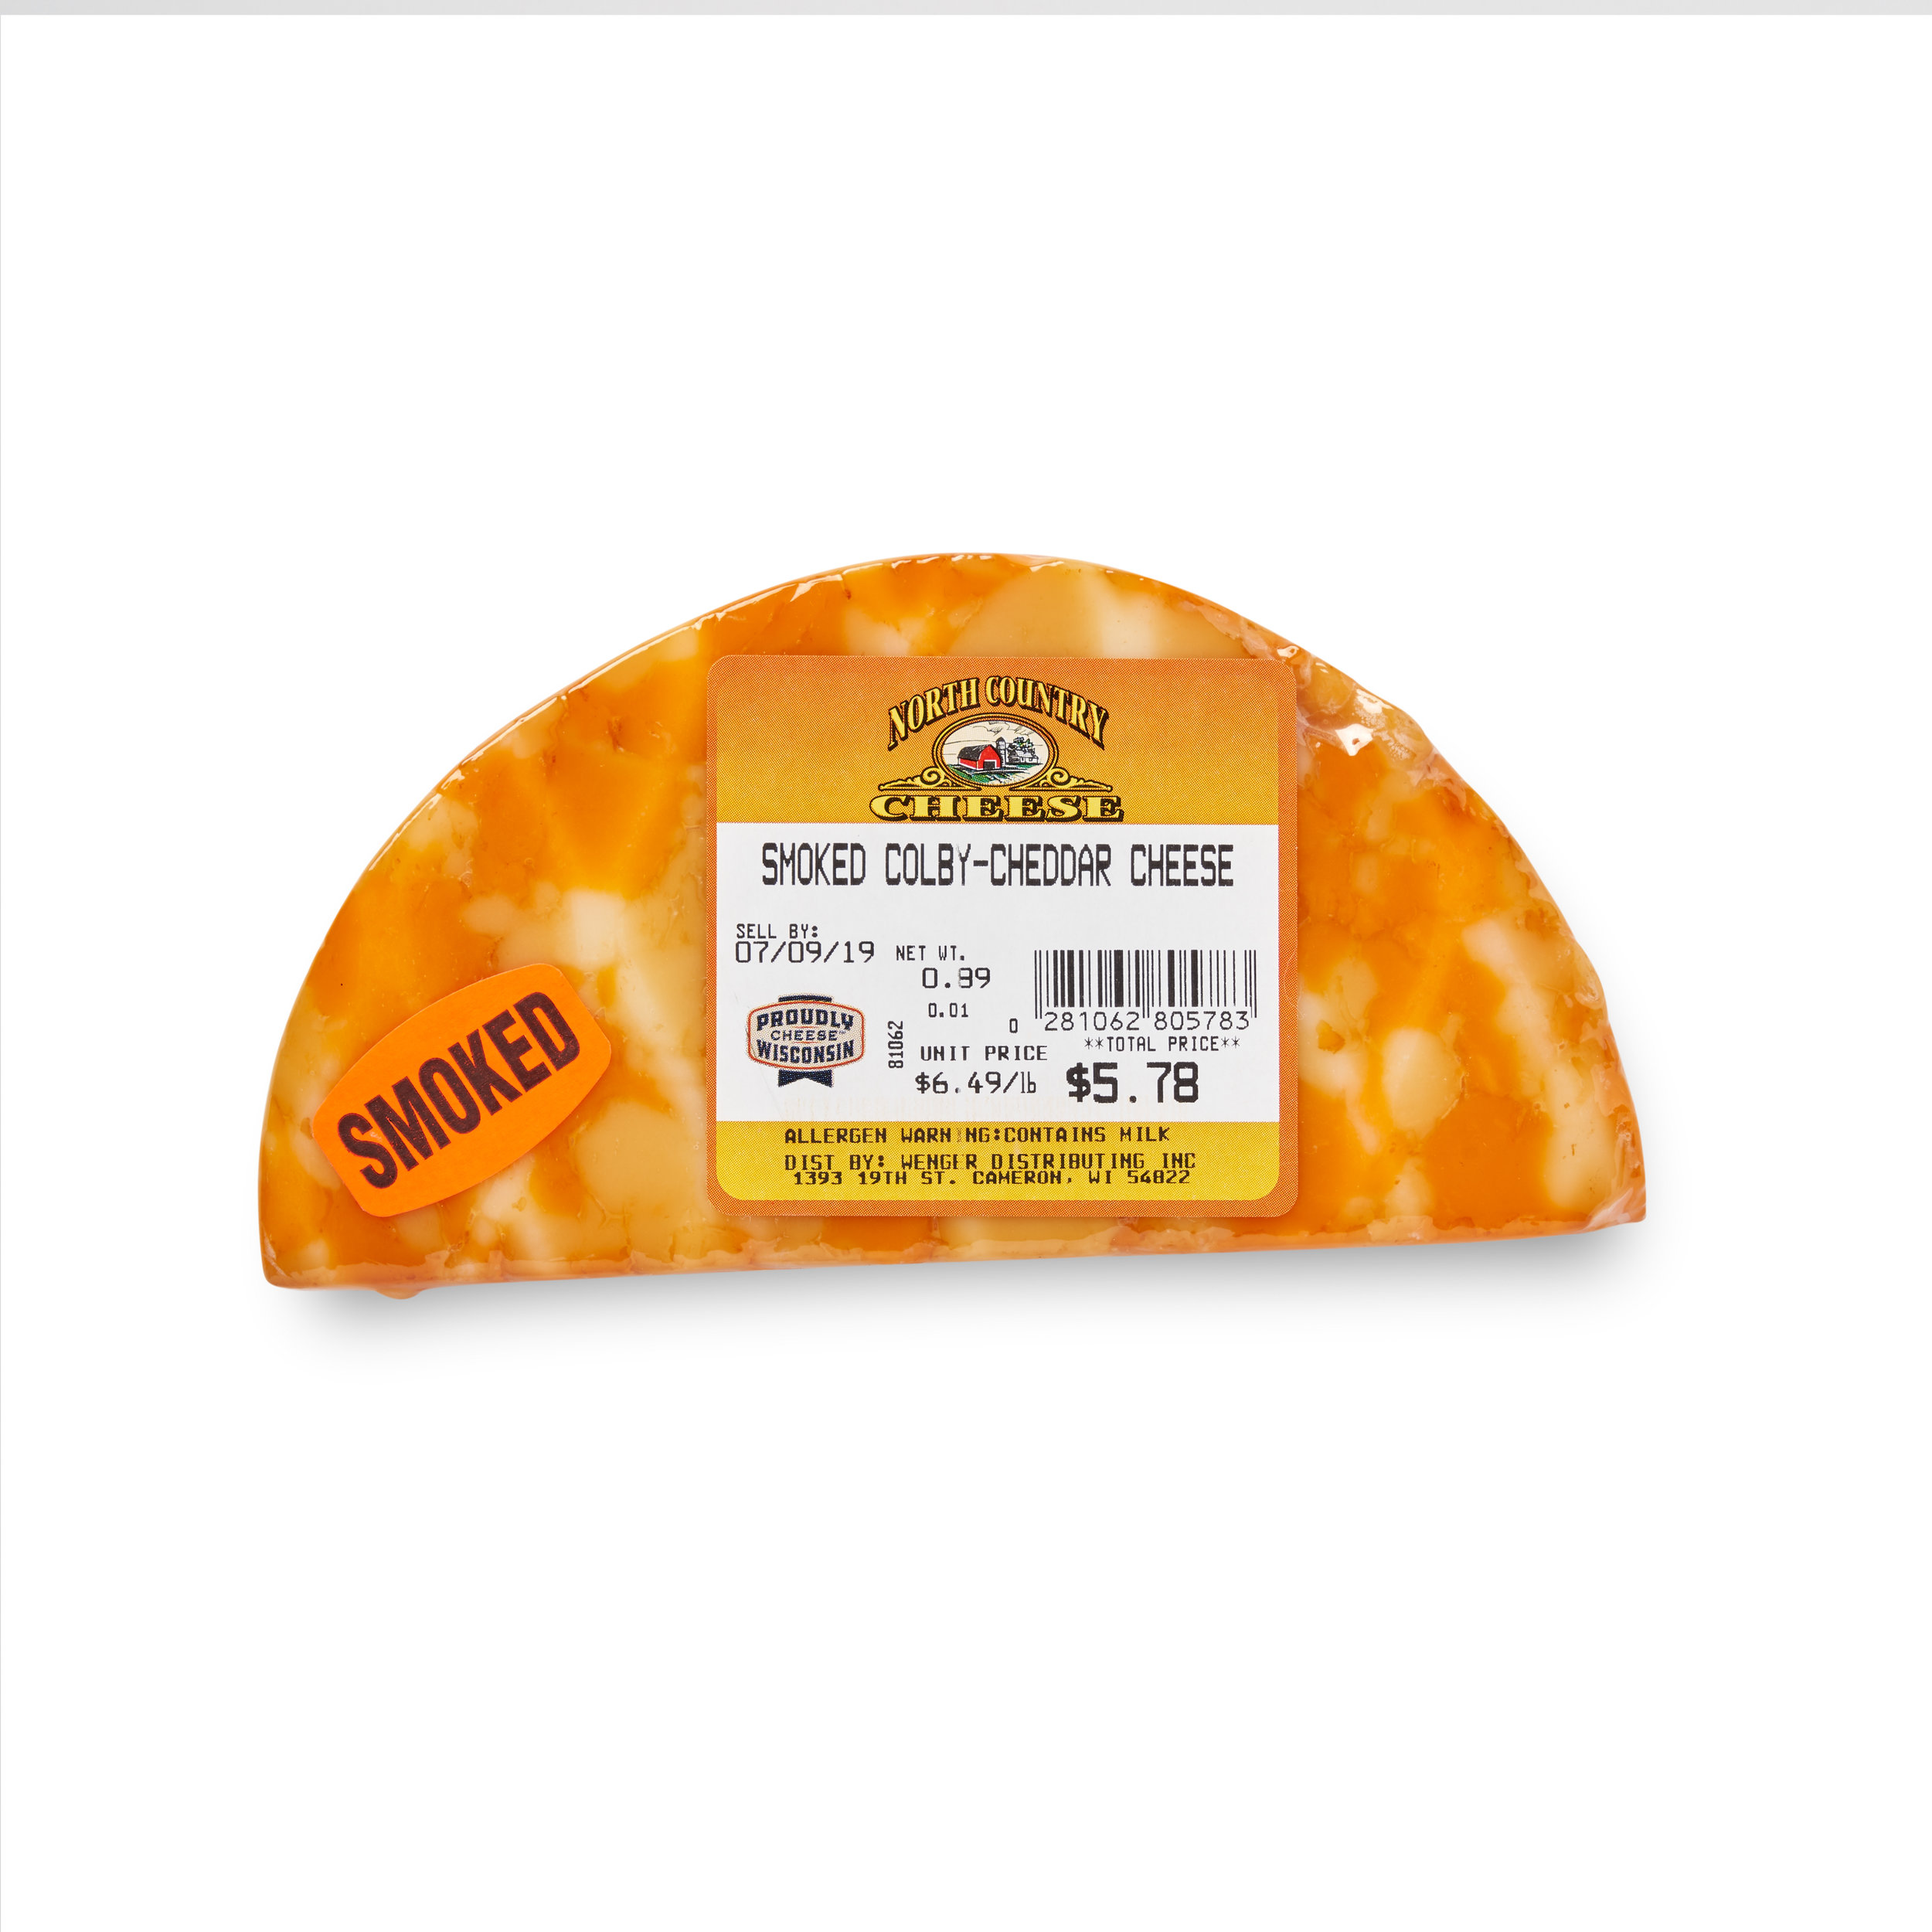 Smoked Co-Cheddar Cheese — North Country Cheese